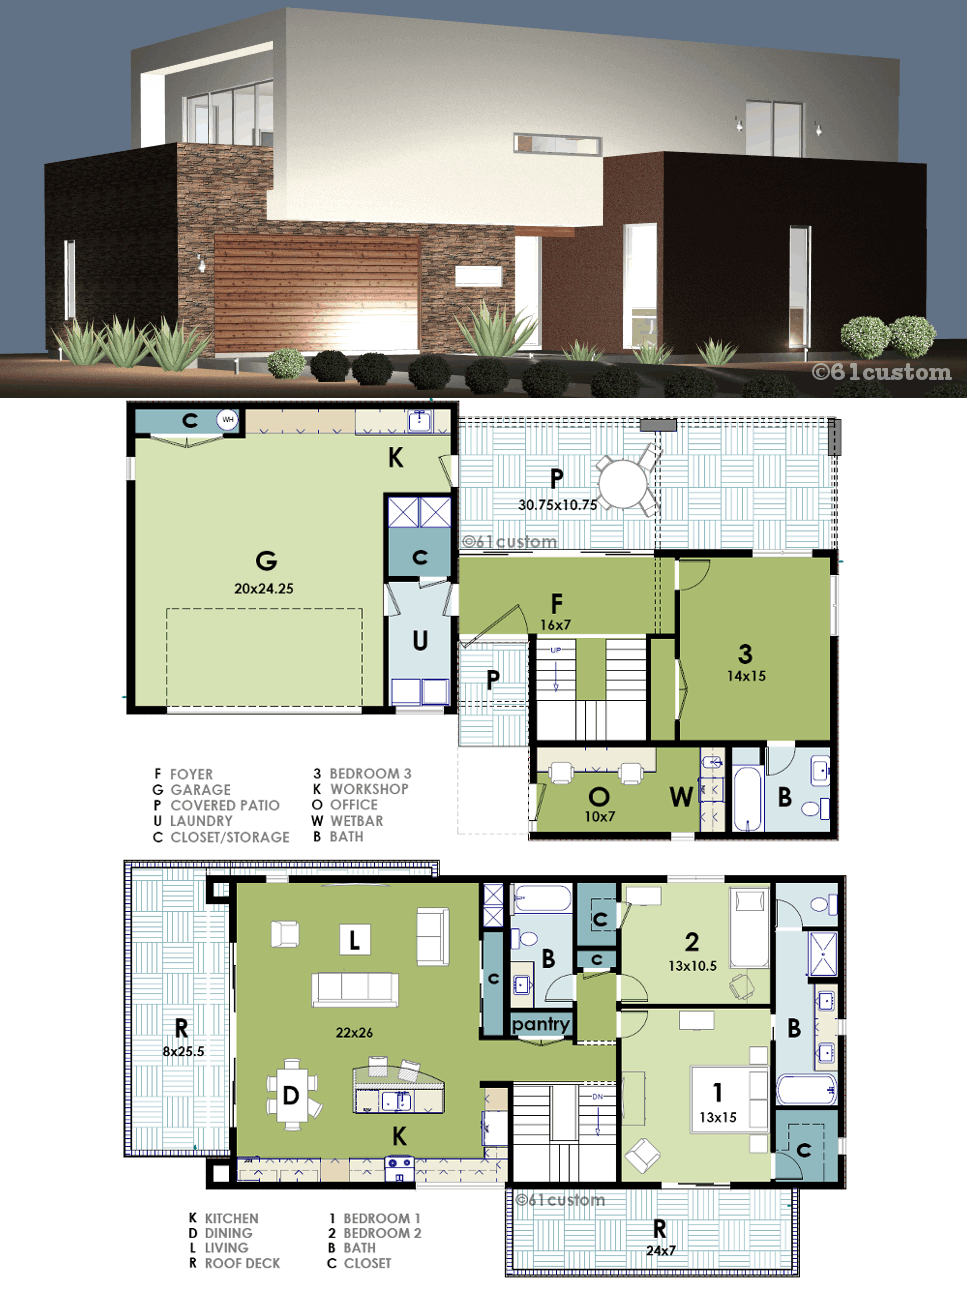 Marvelous Modern Live Work House Plan | 61custom